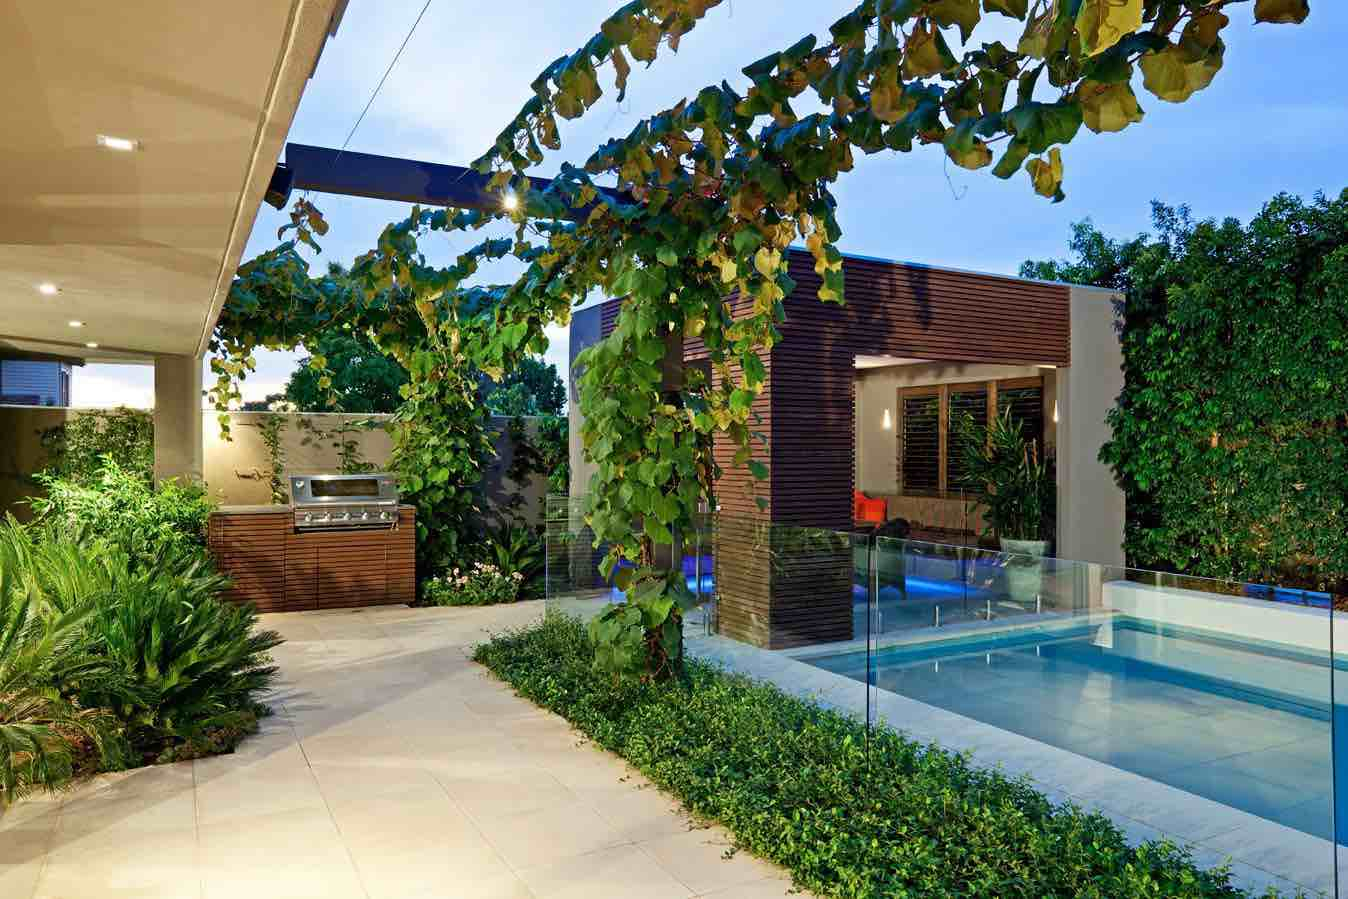 Small Backyard Ideas Of 41 Backyard Design Ideas For Small Yards Worthminer